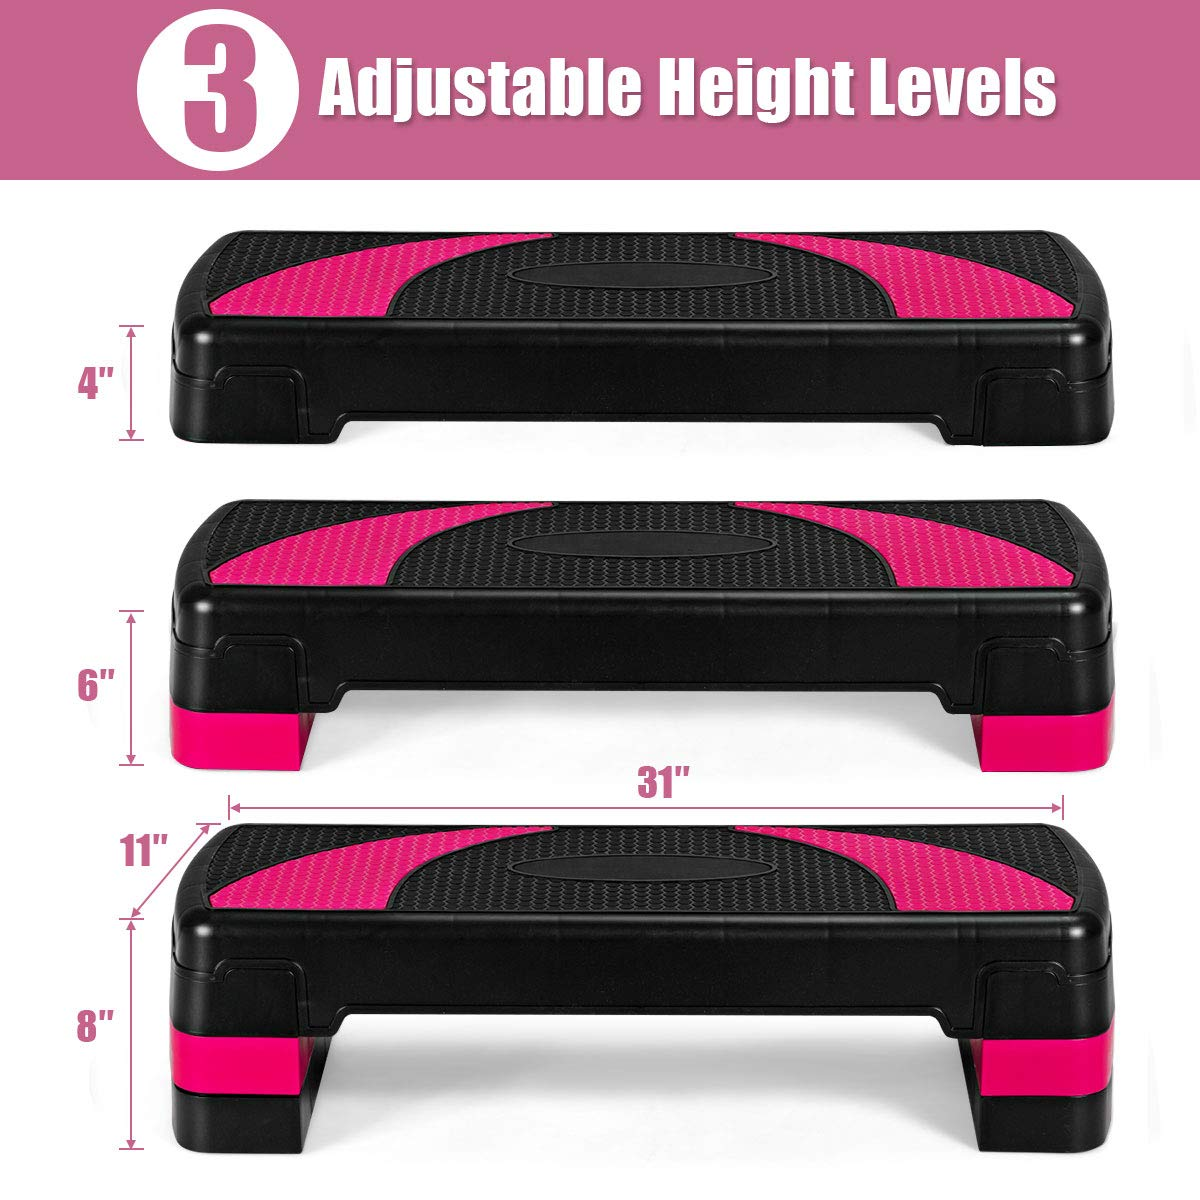 Goplus 31 Aerobic Exercise Stepper Deck, 4 6 8 Levels Height Adjustable Fitness Workout Step Platform Trainer with Risers, for Home Gym and Office Black Pink